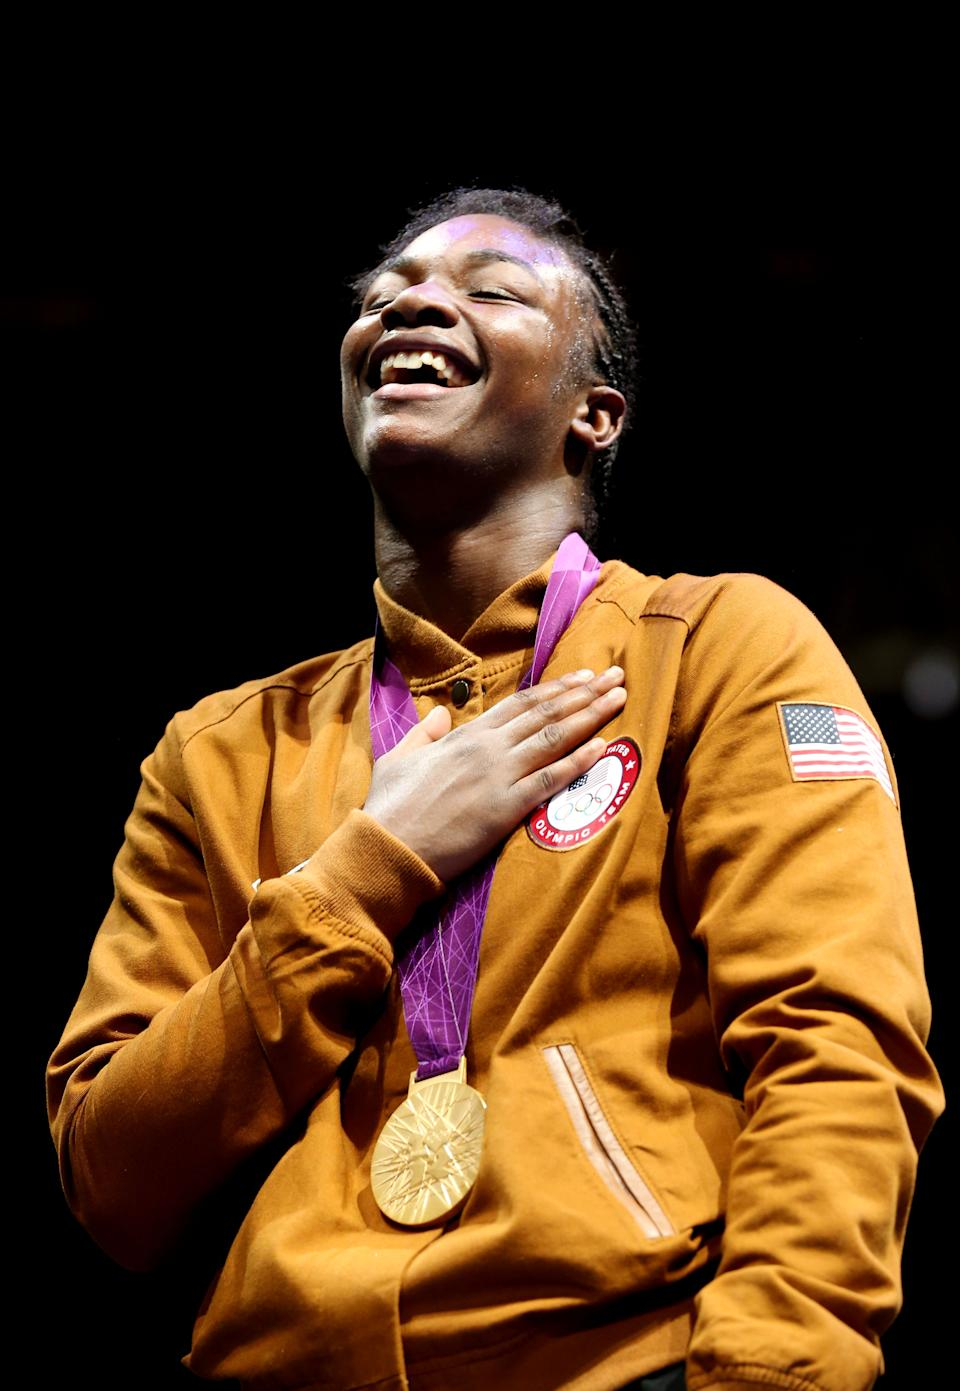 """Gold medalist <a href=""""http://sports.yahoo.com/olympics/boxing/claressa-shields-1132139/"""" data-ylk=""""slk:Claressa Shields"""" class=""""link rapid-noclick-resp"""">Claressa Shields</a> of the United States celebrates on the podium during the medal ceremony for the Women's Middle (75kg) Boxing final bout on Day 13 of the London 2012 Olympic Games at ExCeL on August 9, 2012 in London, England. (Getty Images)"""